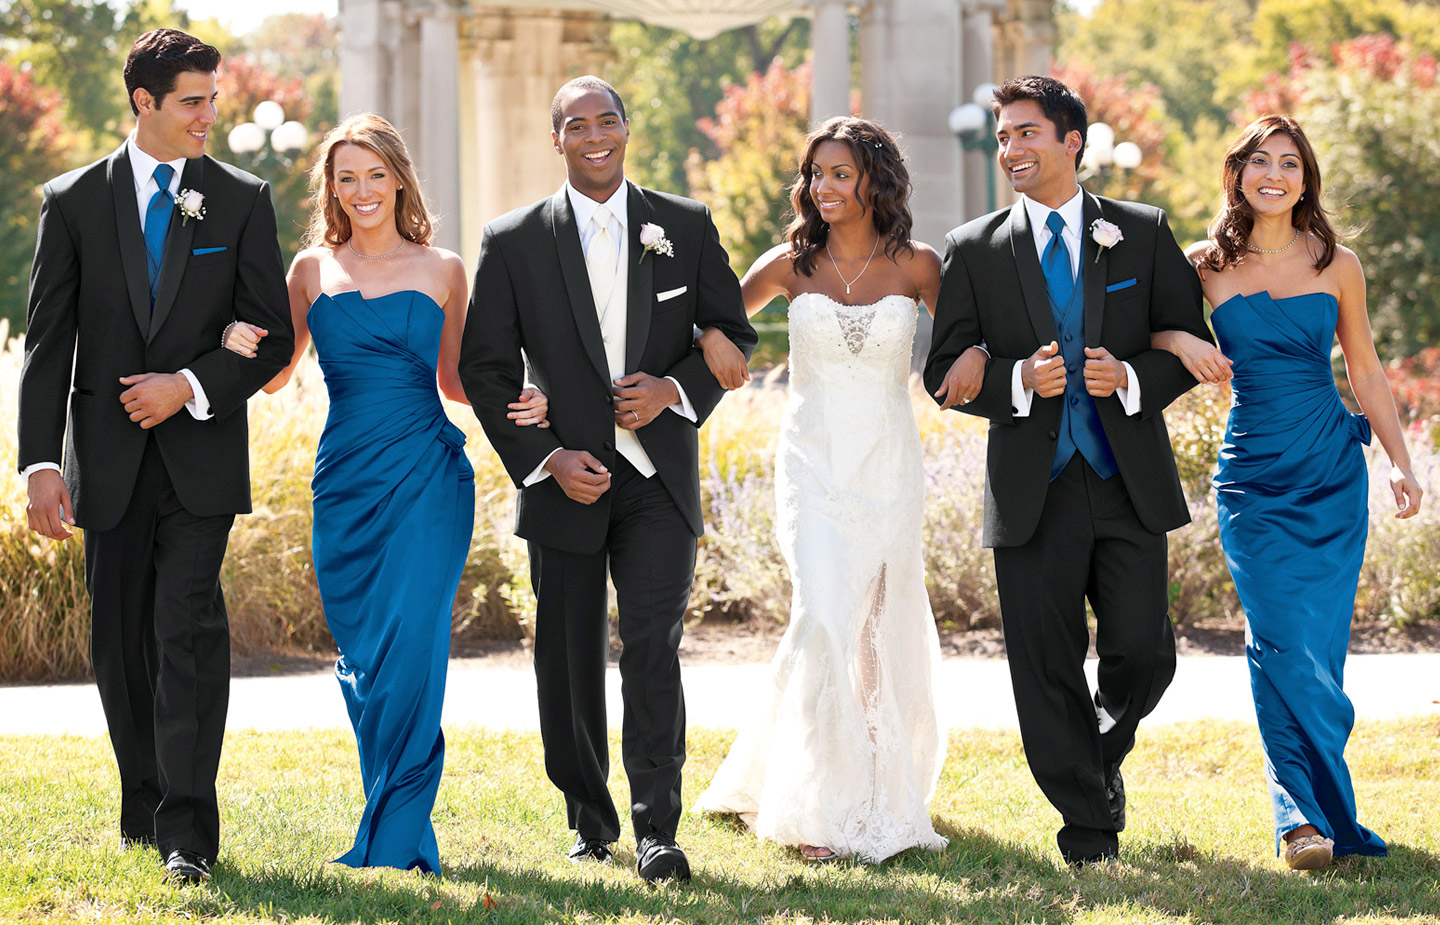 Tuxedo & Gown Rental - Sweethearts Bridal Boutique Las Vegas - 702 ...